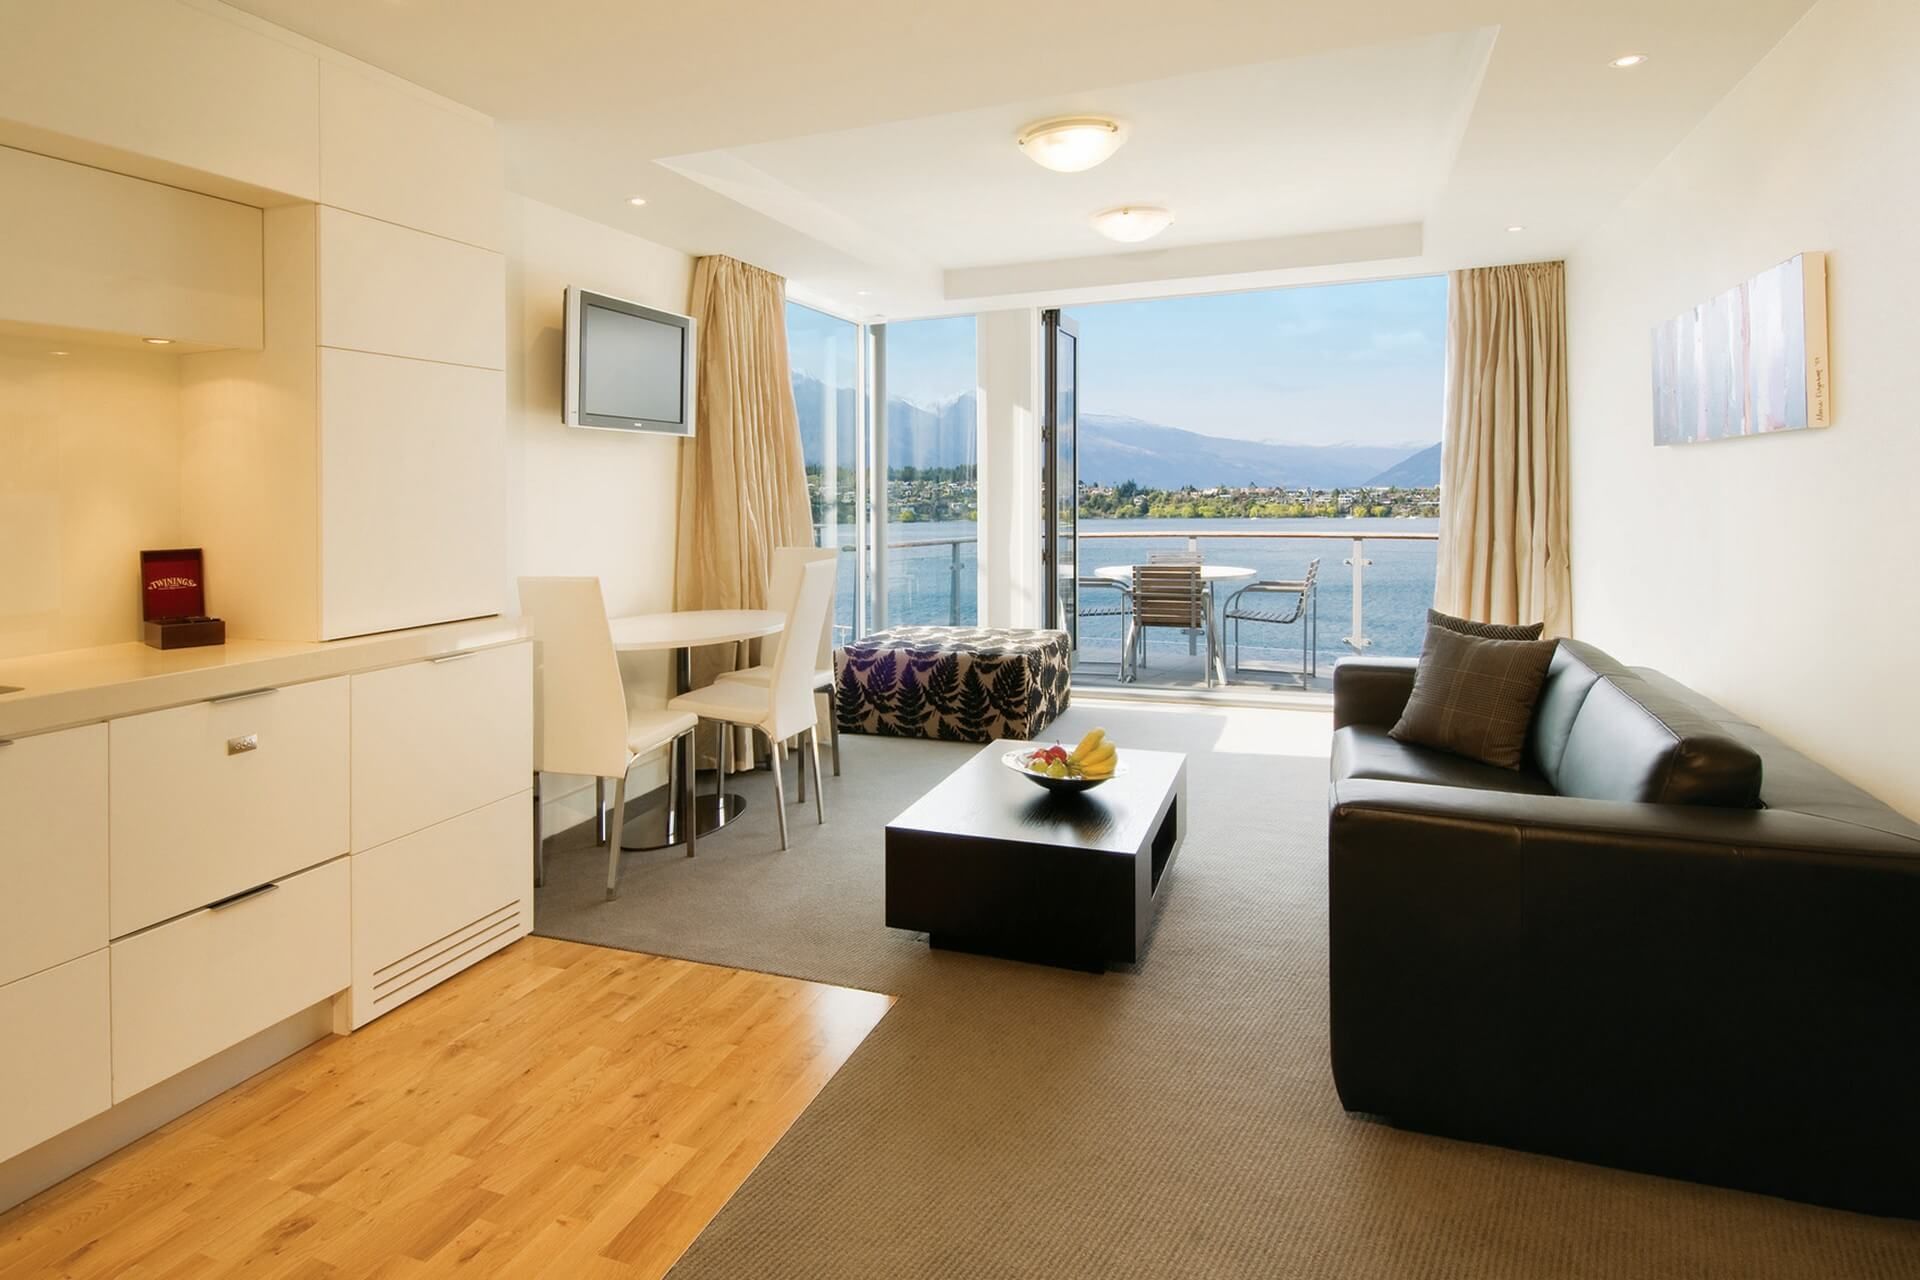 Queenstown_Oaks Club - One Bedroom Living & Lakeside View(1920x1280)